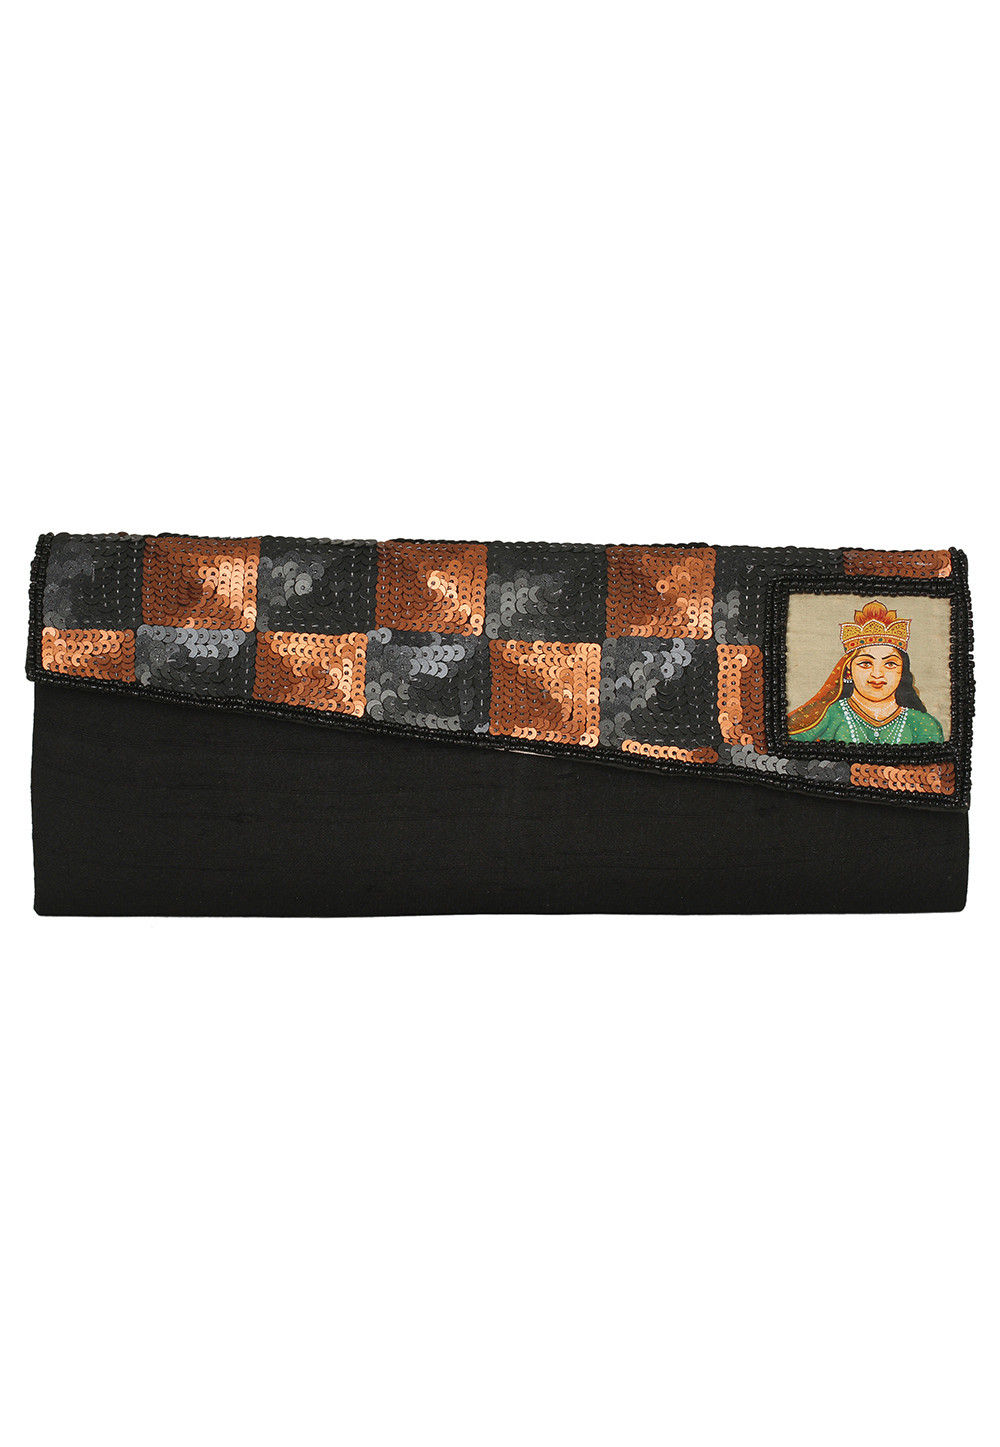 Hand Painted Dupion Clutch Bag in Black